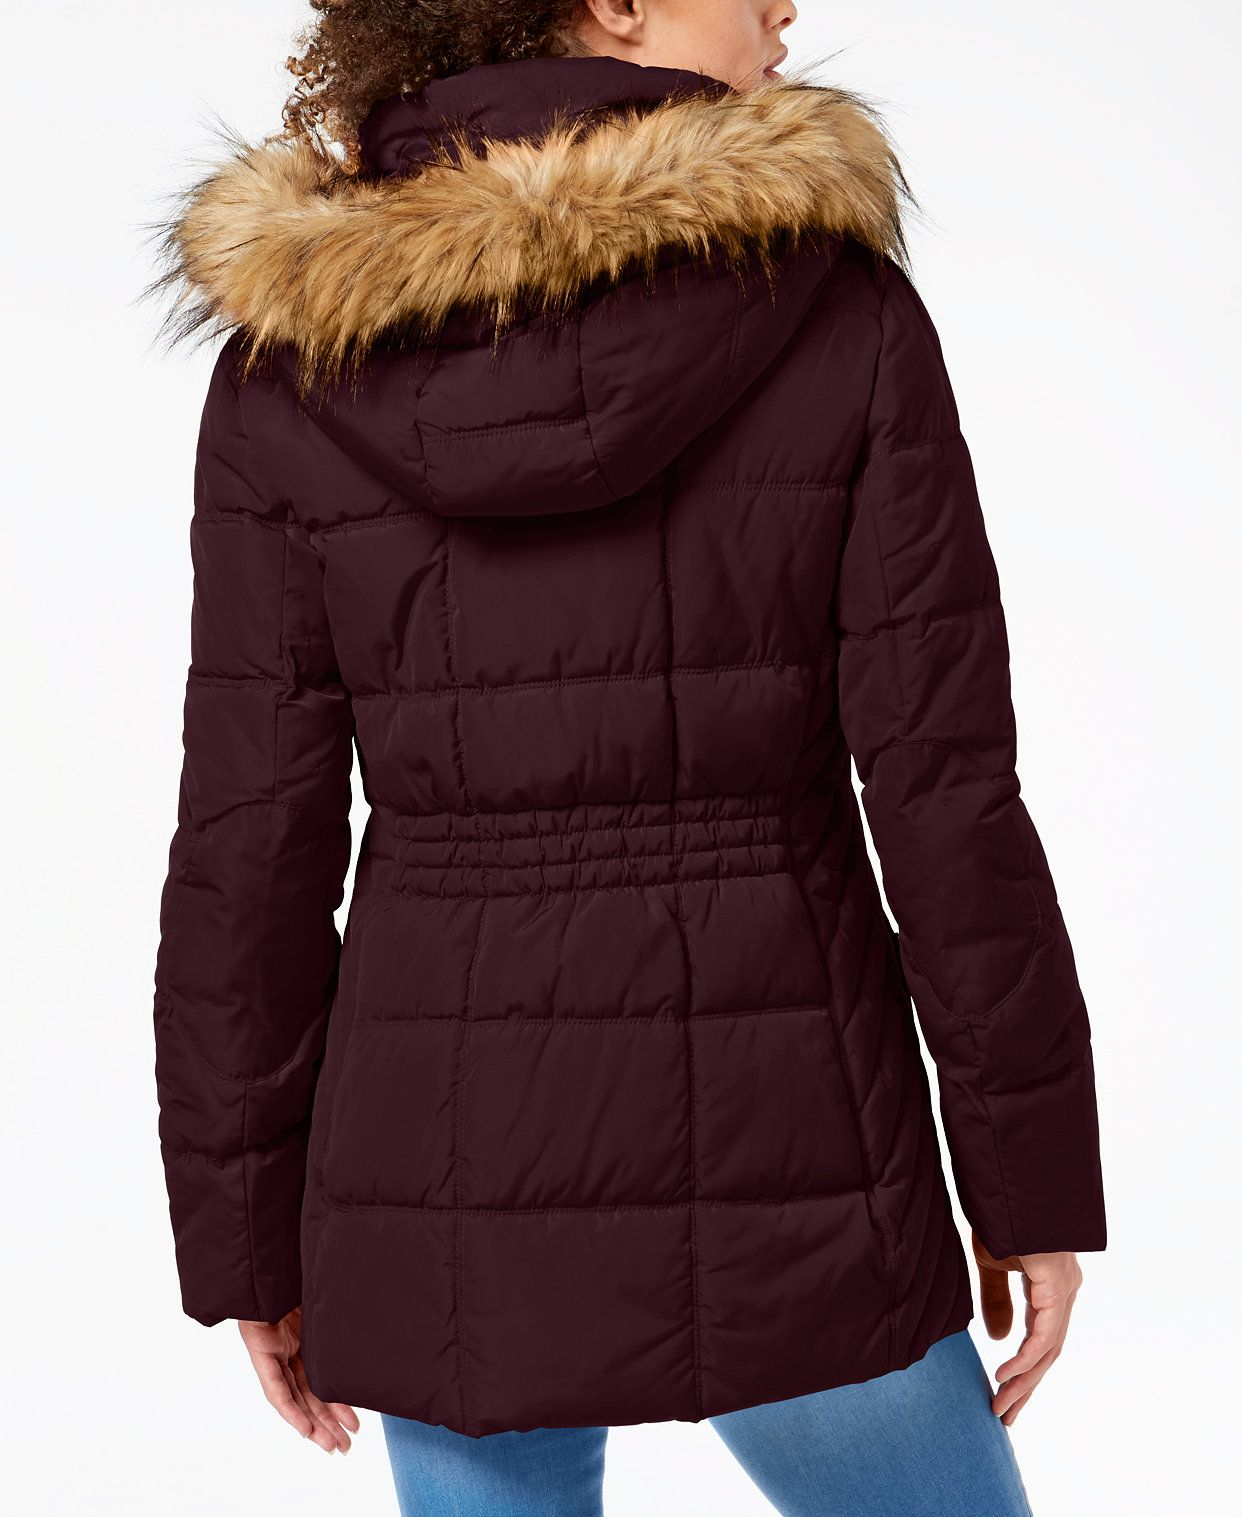 Tommy Hilfiger Faux Fur Trim Hooded Puffer Coat Created For Macy S Reviews Coats Women Macy S Puffer Coat Hooded Faux Coats For Women [ 1517 x 1242 Pixel ]